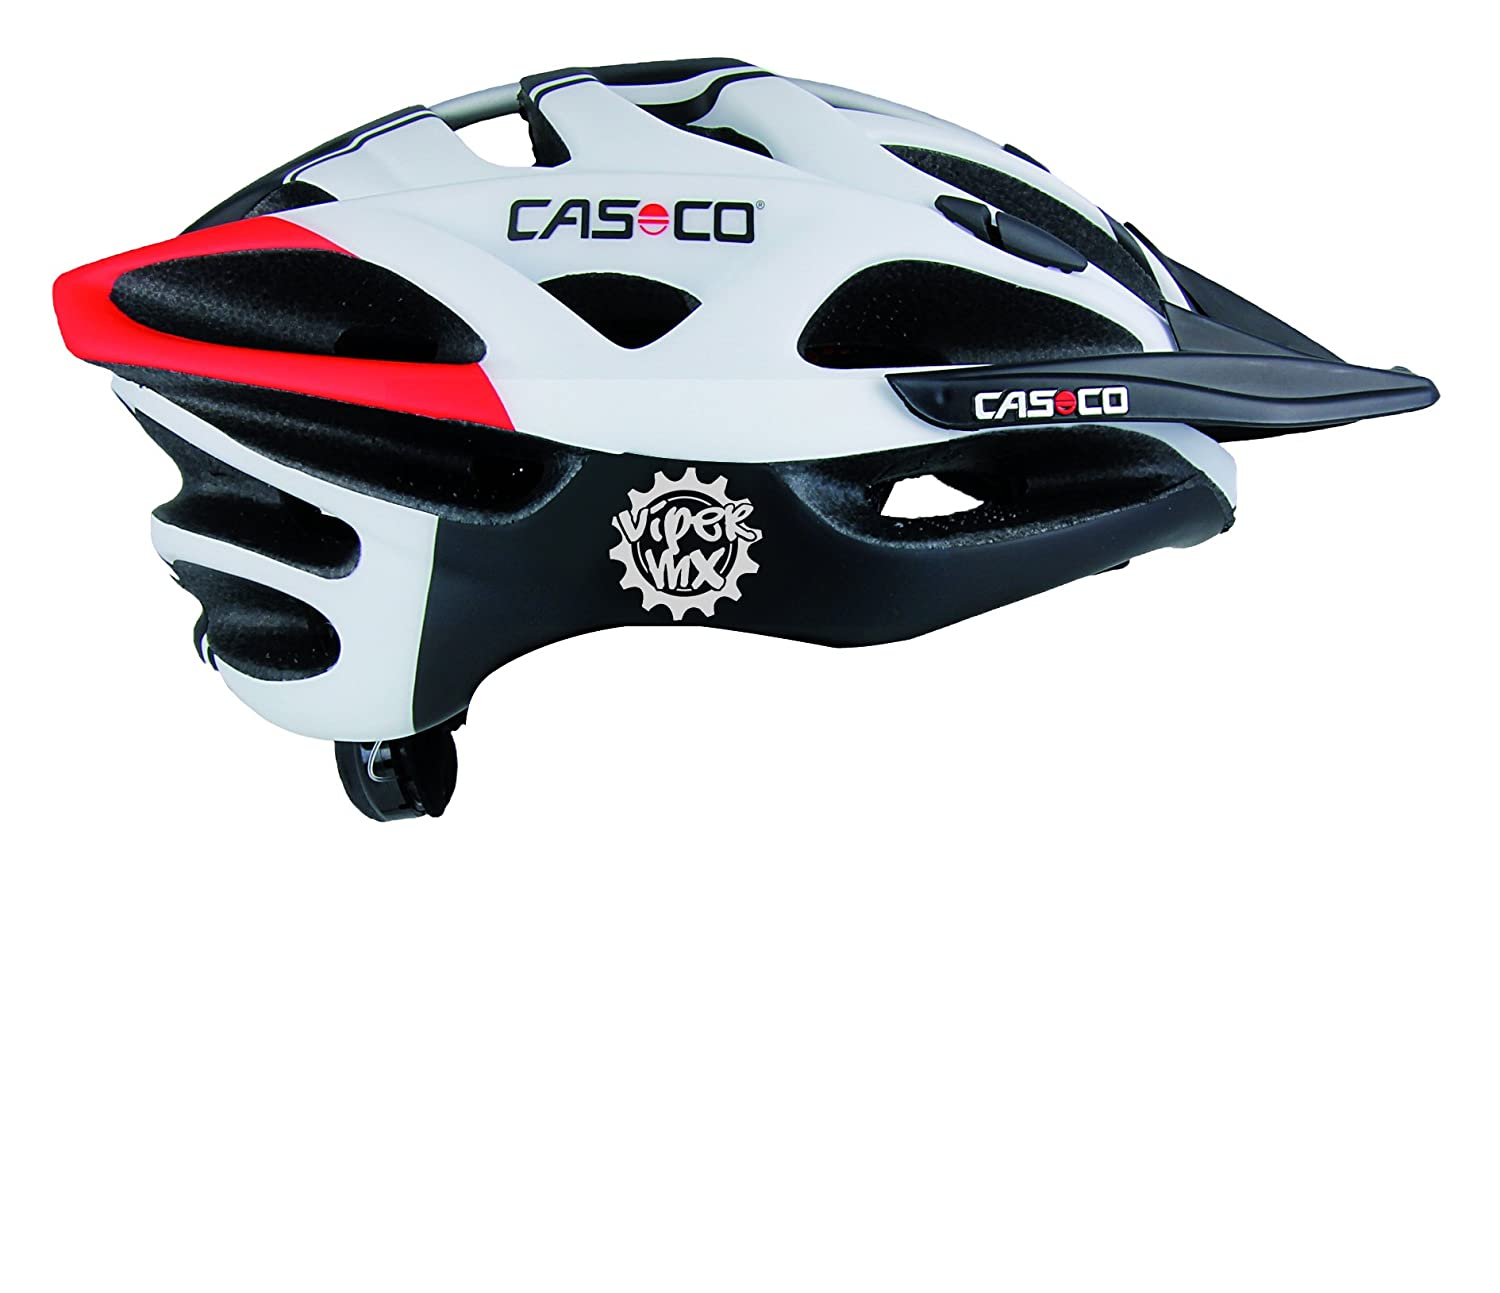 Bicicleta Casco Casco Viper MX Comp, todas las estaciones, color competition, tamaño M (52 bis 57cm): Amazon.es: Deportes y aire libre